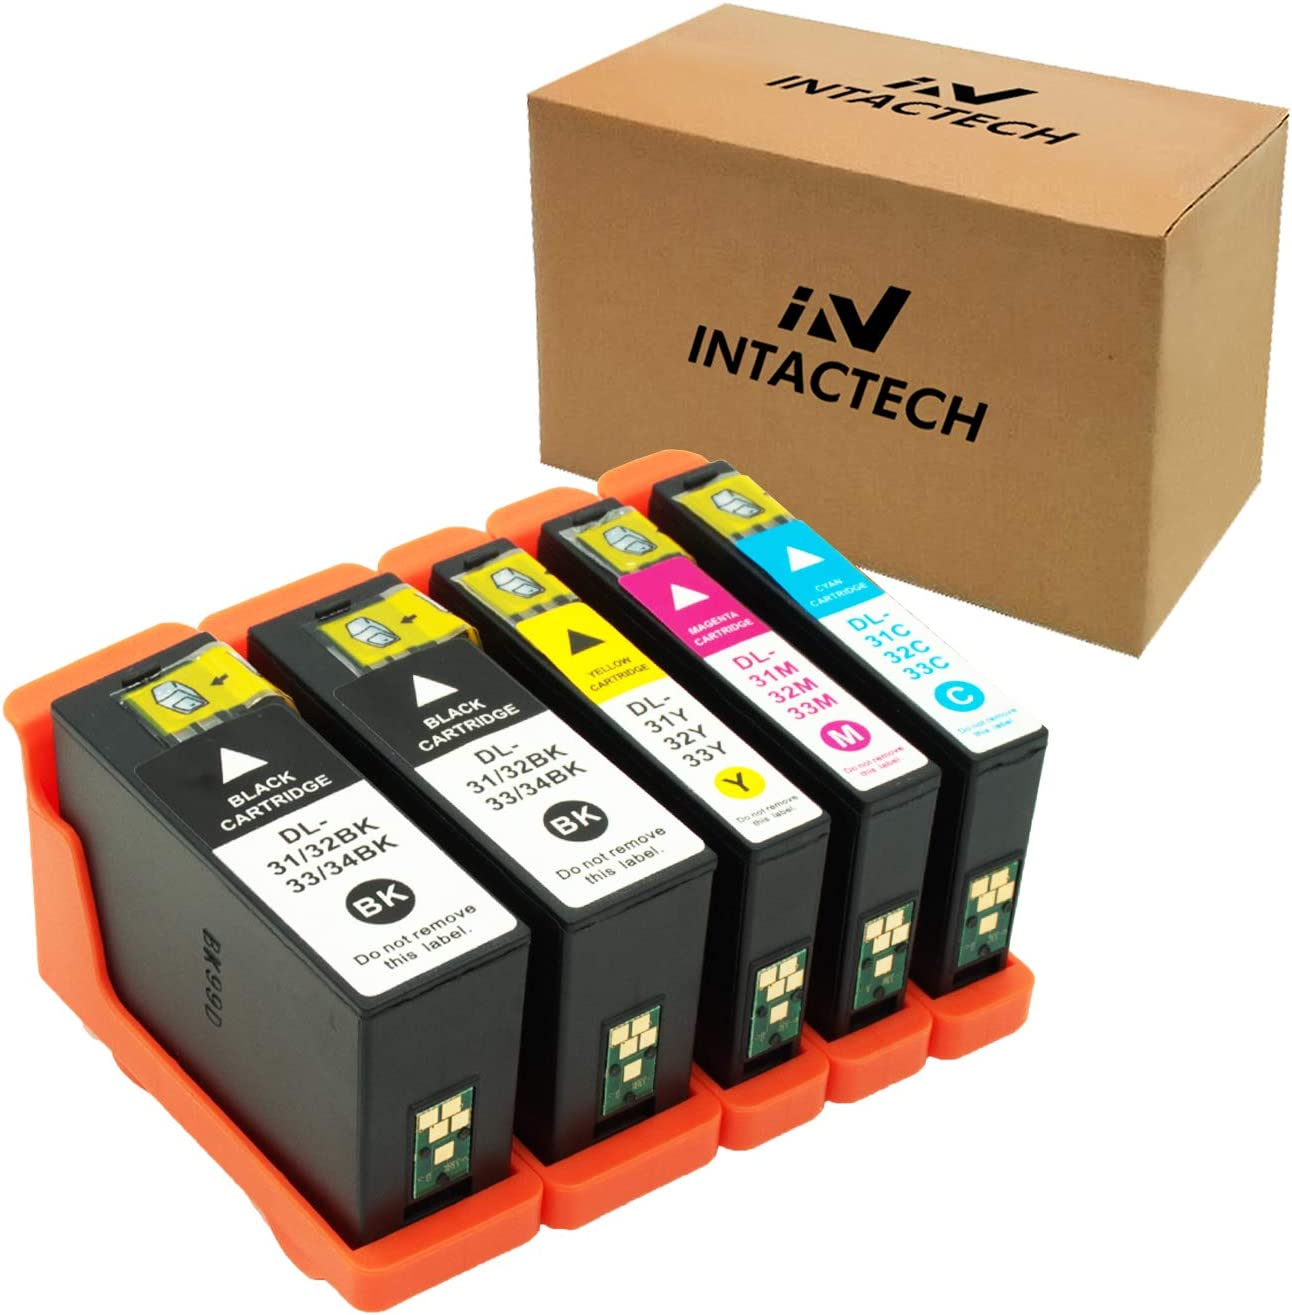 Intactech Compatible Dell Series 31 32 33 34 Ink Cartridges Work for Dell V525w V725w Printer (5 Pack, 2 Black, 1 Cyan, 1 Magenta, 1 Yellow)